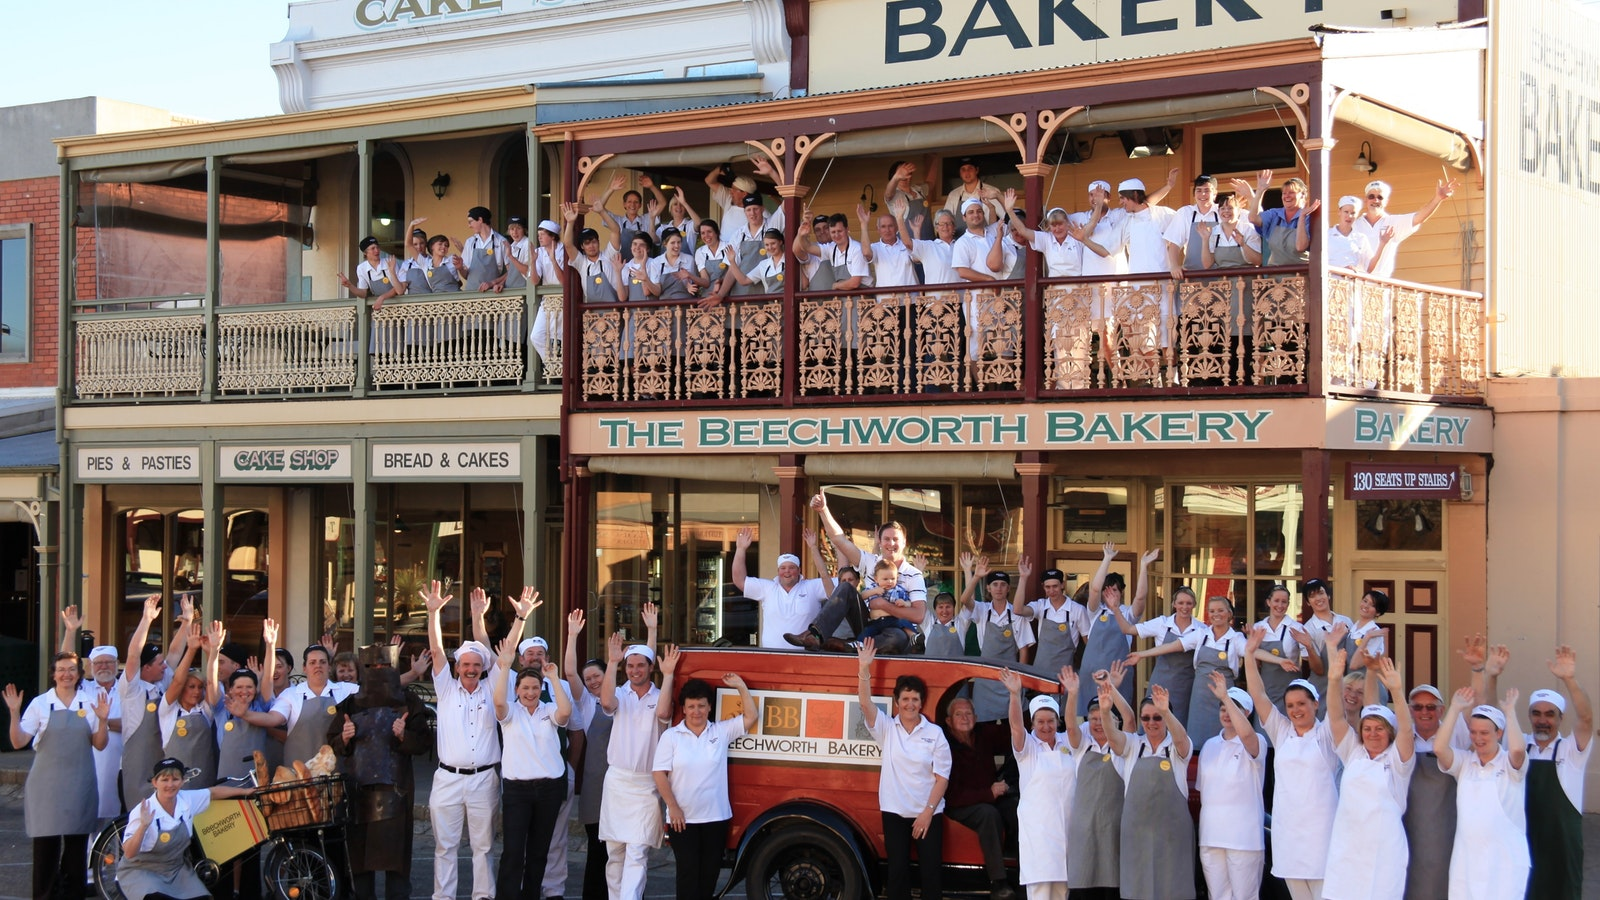 Beechworth Bakery welcomes you